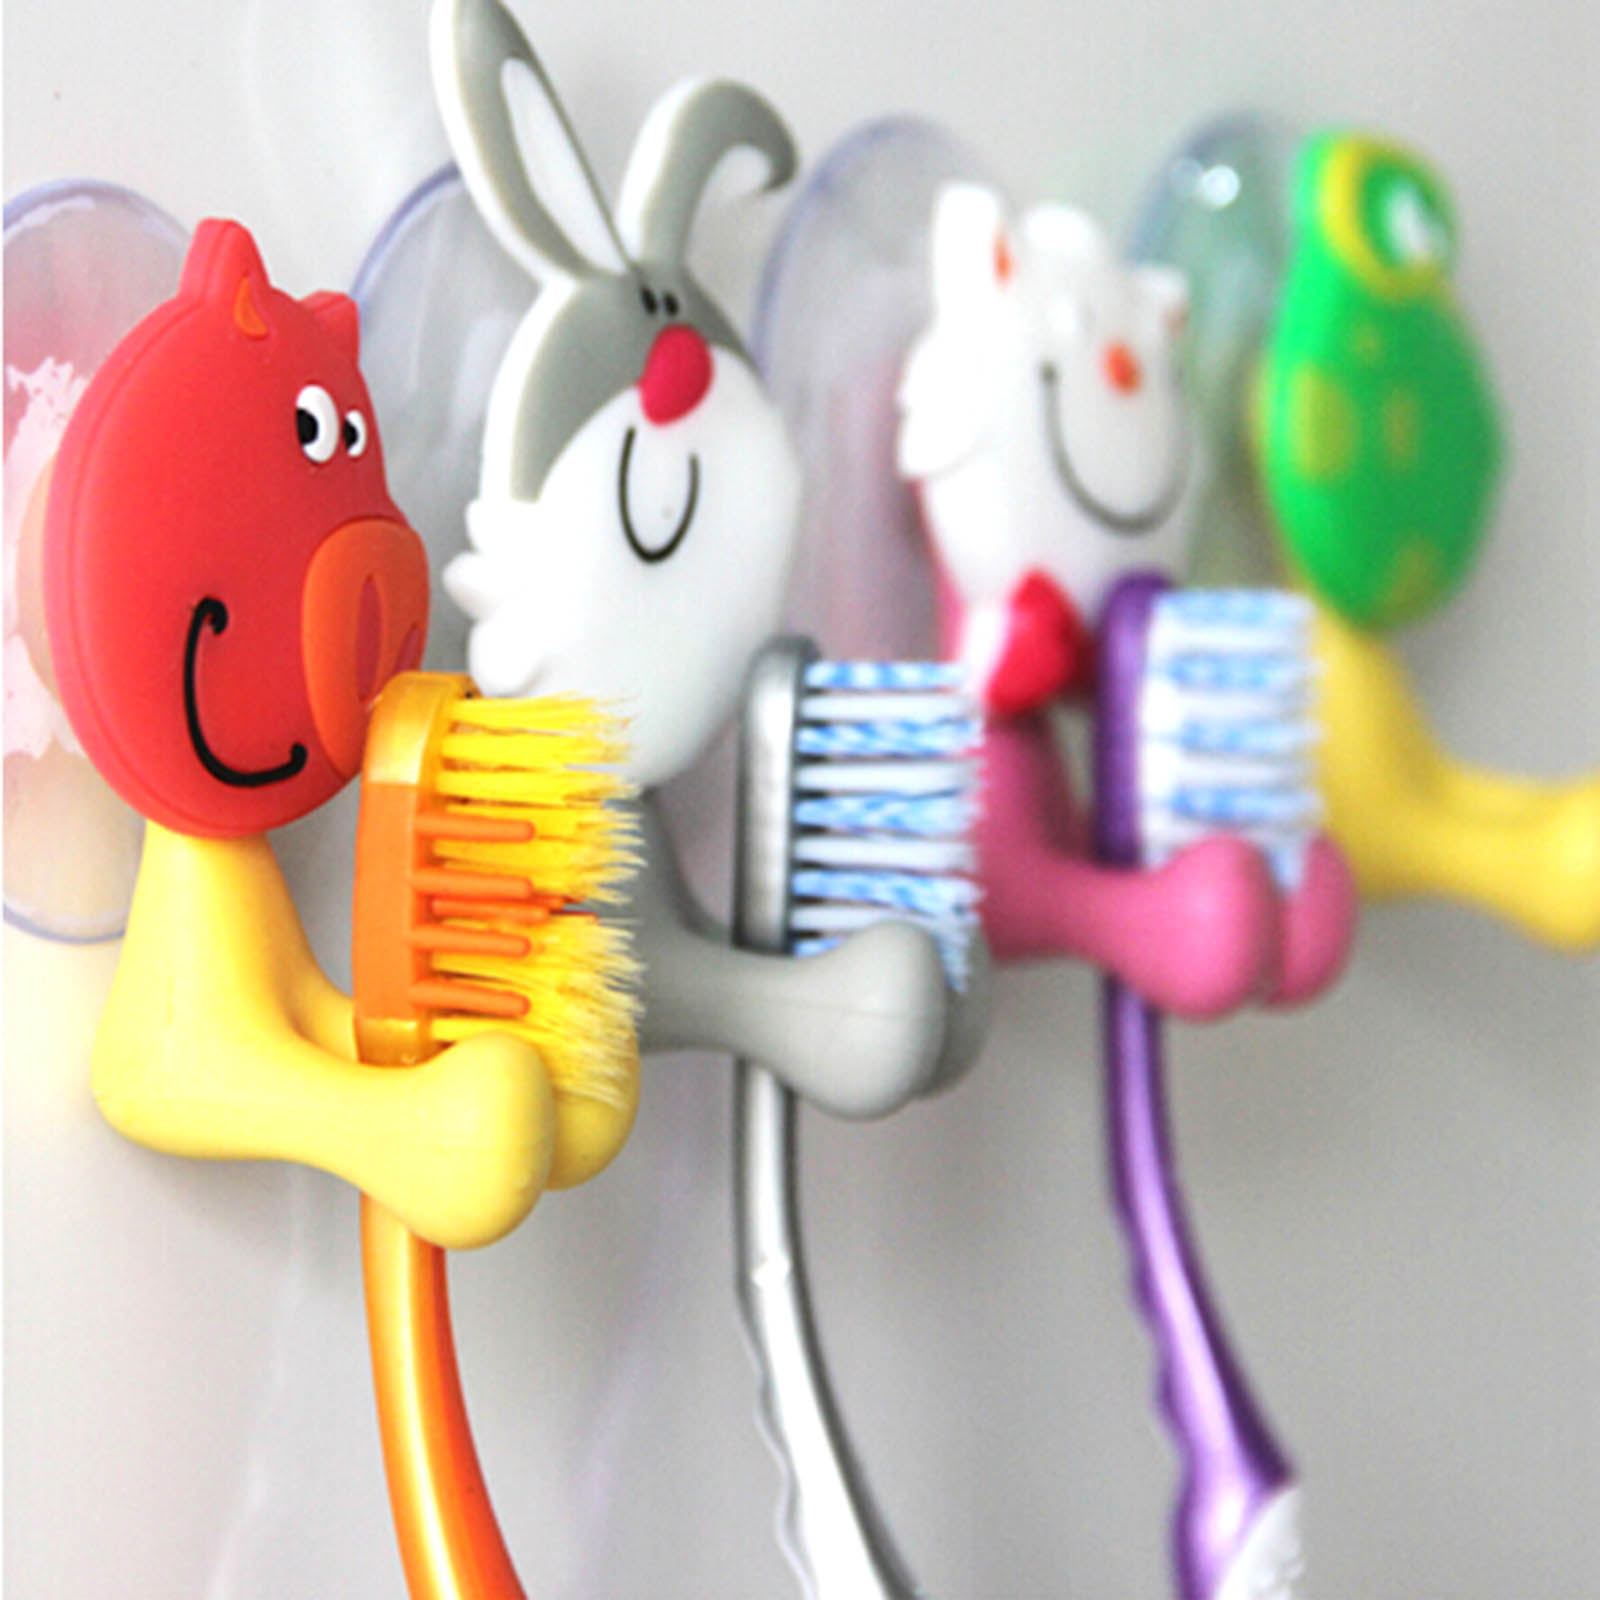 Cute Novelty Design Silicone Toothbrush Holder Home Bathroom Kitchen Wall Hanger Cartoon Animal Brush Holder With Suction Cup image